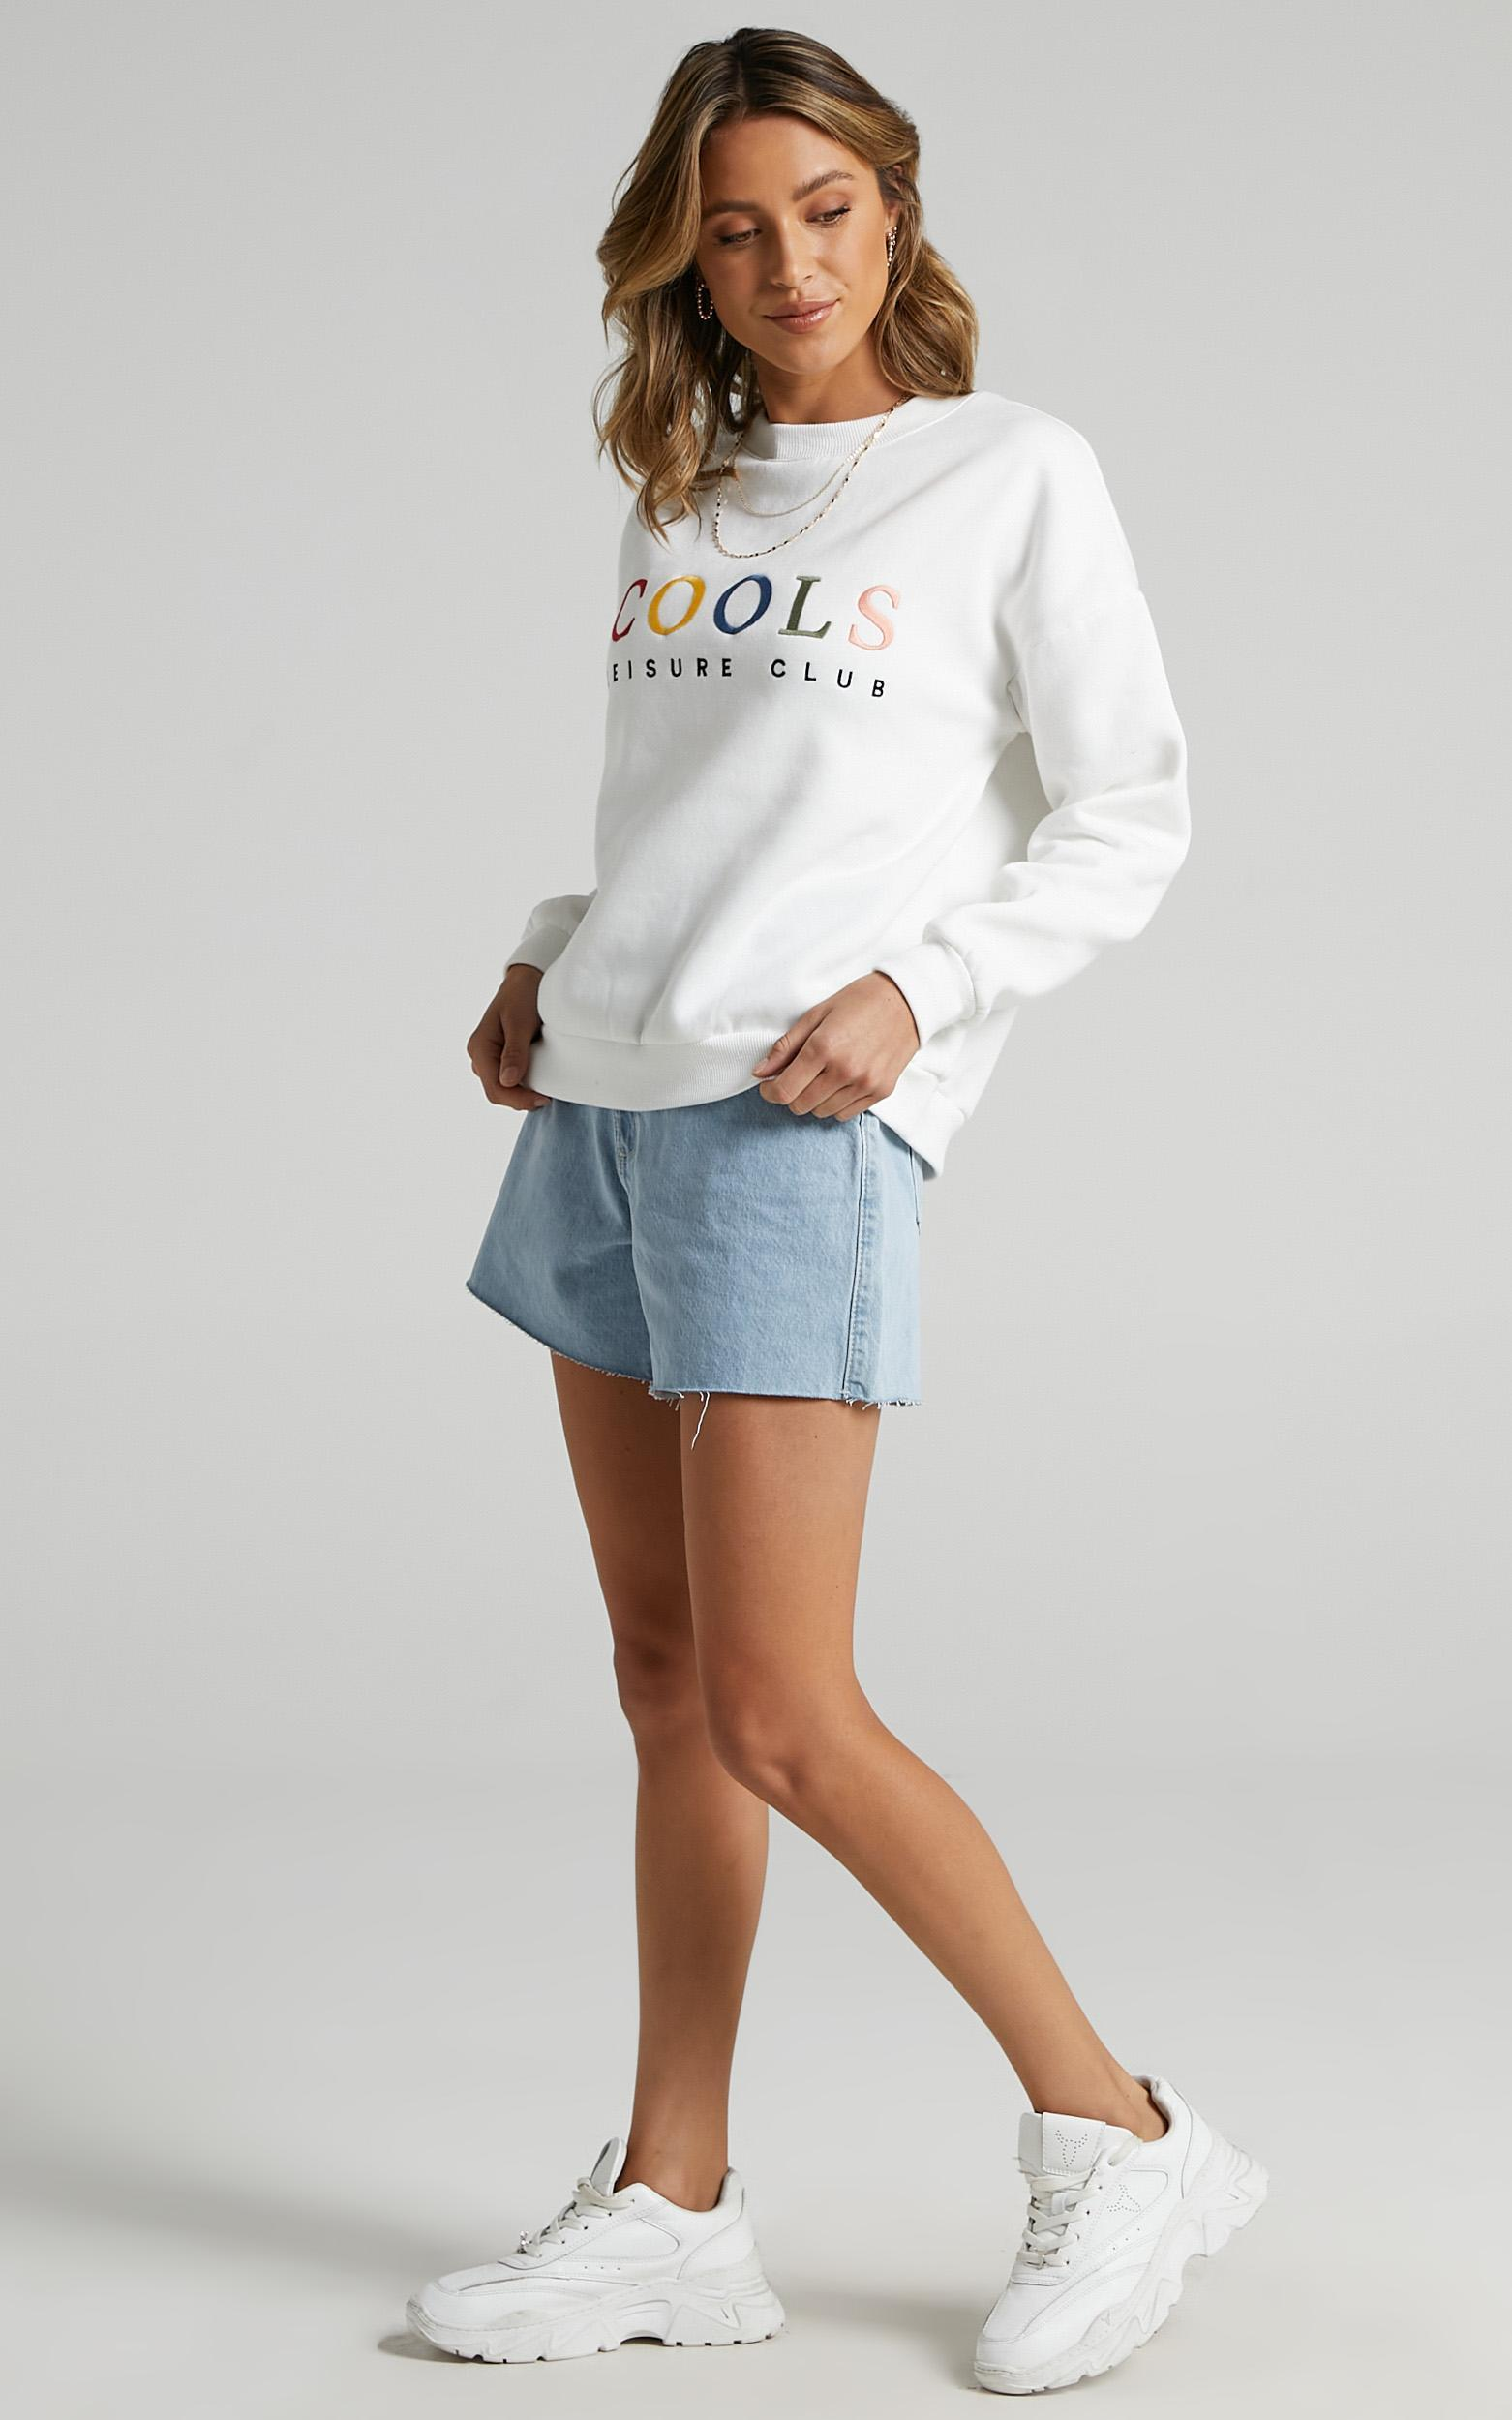 Cools Club - Leisure Club Sweat in White - 6 (XS), White, hi-res image number null